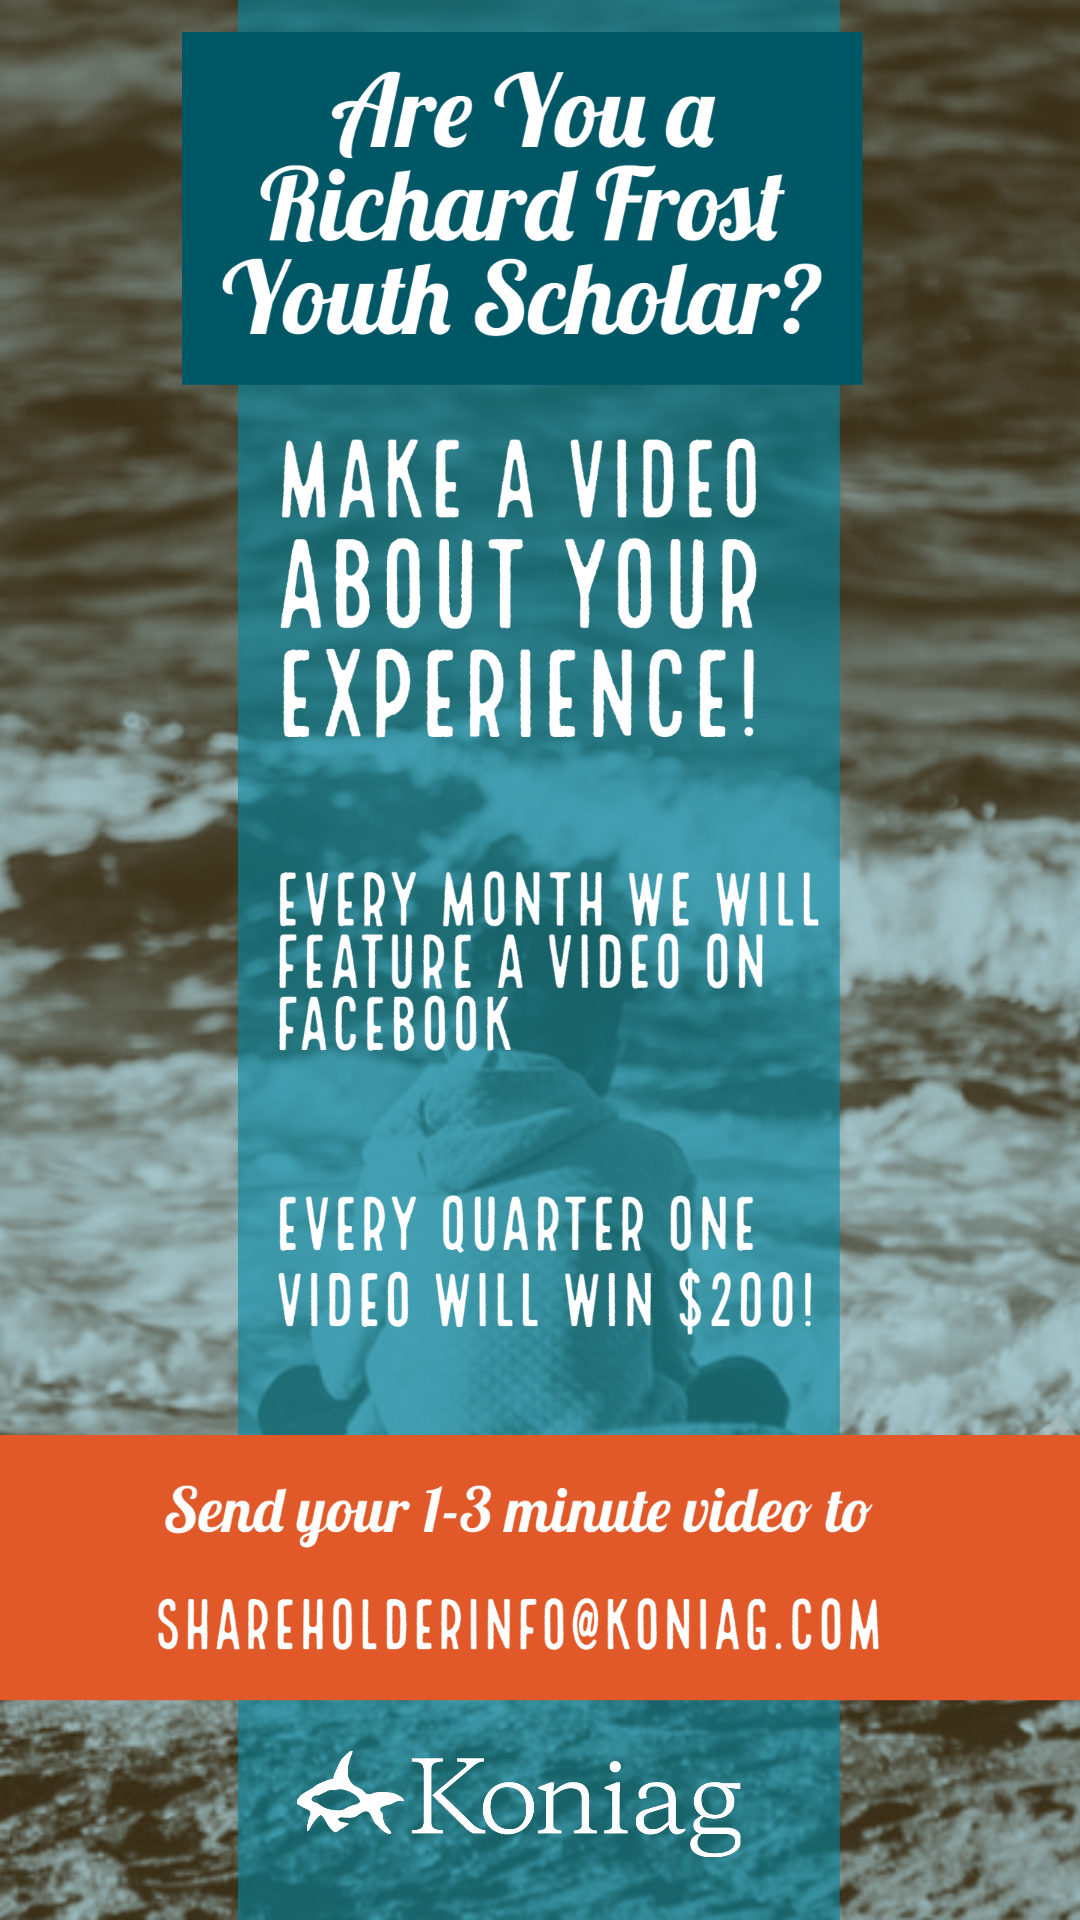 Richard Frost Youth Scholars are invited to make a video about their experience.   A video will be featured each month, and each quarter one video will win $200.   Send questions and video submissions to shareholderinfo@koniag.com